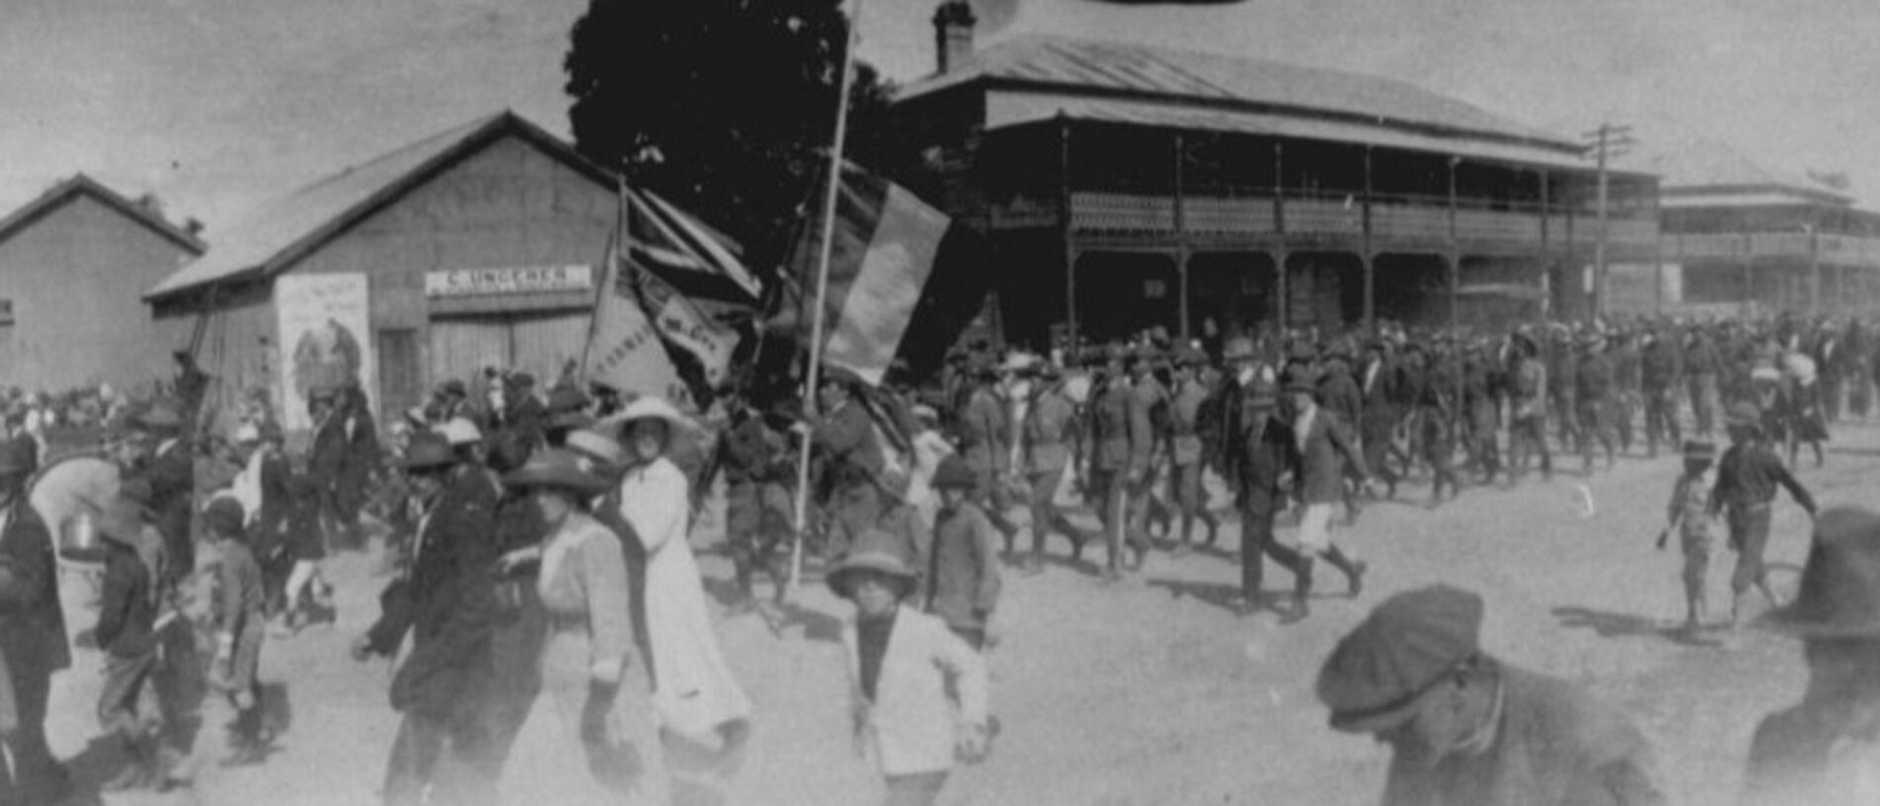 Troops leaving the wharves in Mackay to join the troops waiting at Flat Top Island to embark to serve in World War I, 1914. Picture: Mackay Regional Council Libraries